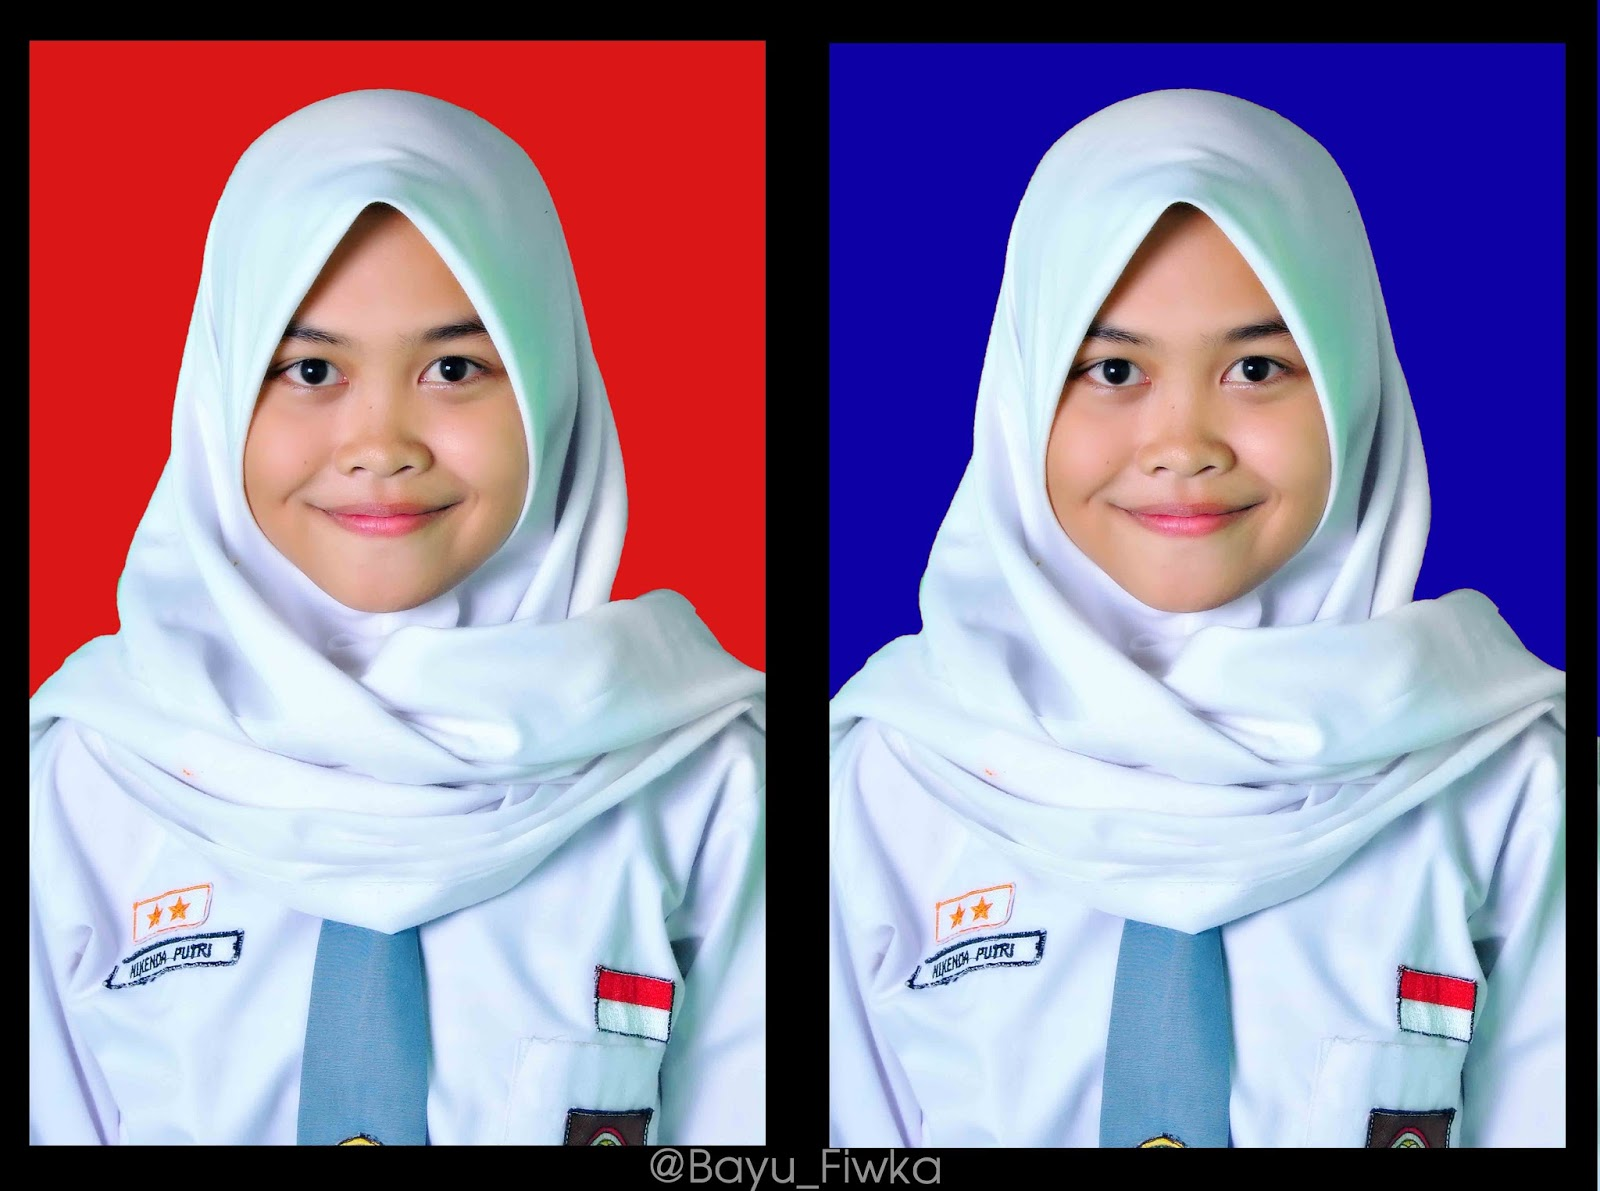 Download 62+ Background Foto Lamaran Kerja Yang Benar Gratis